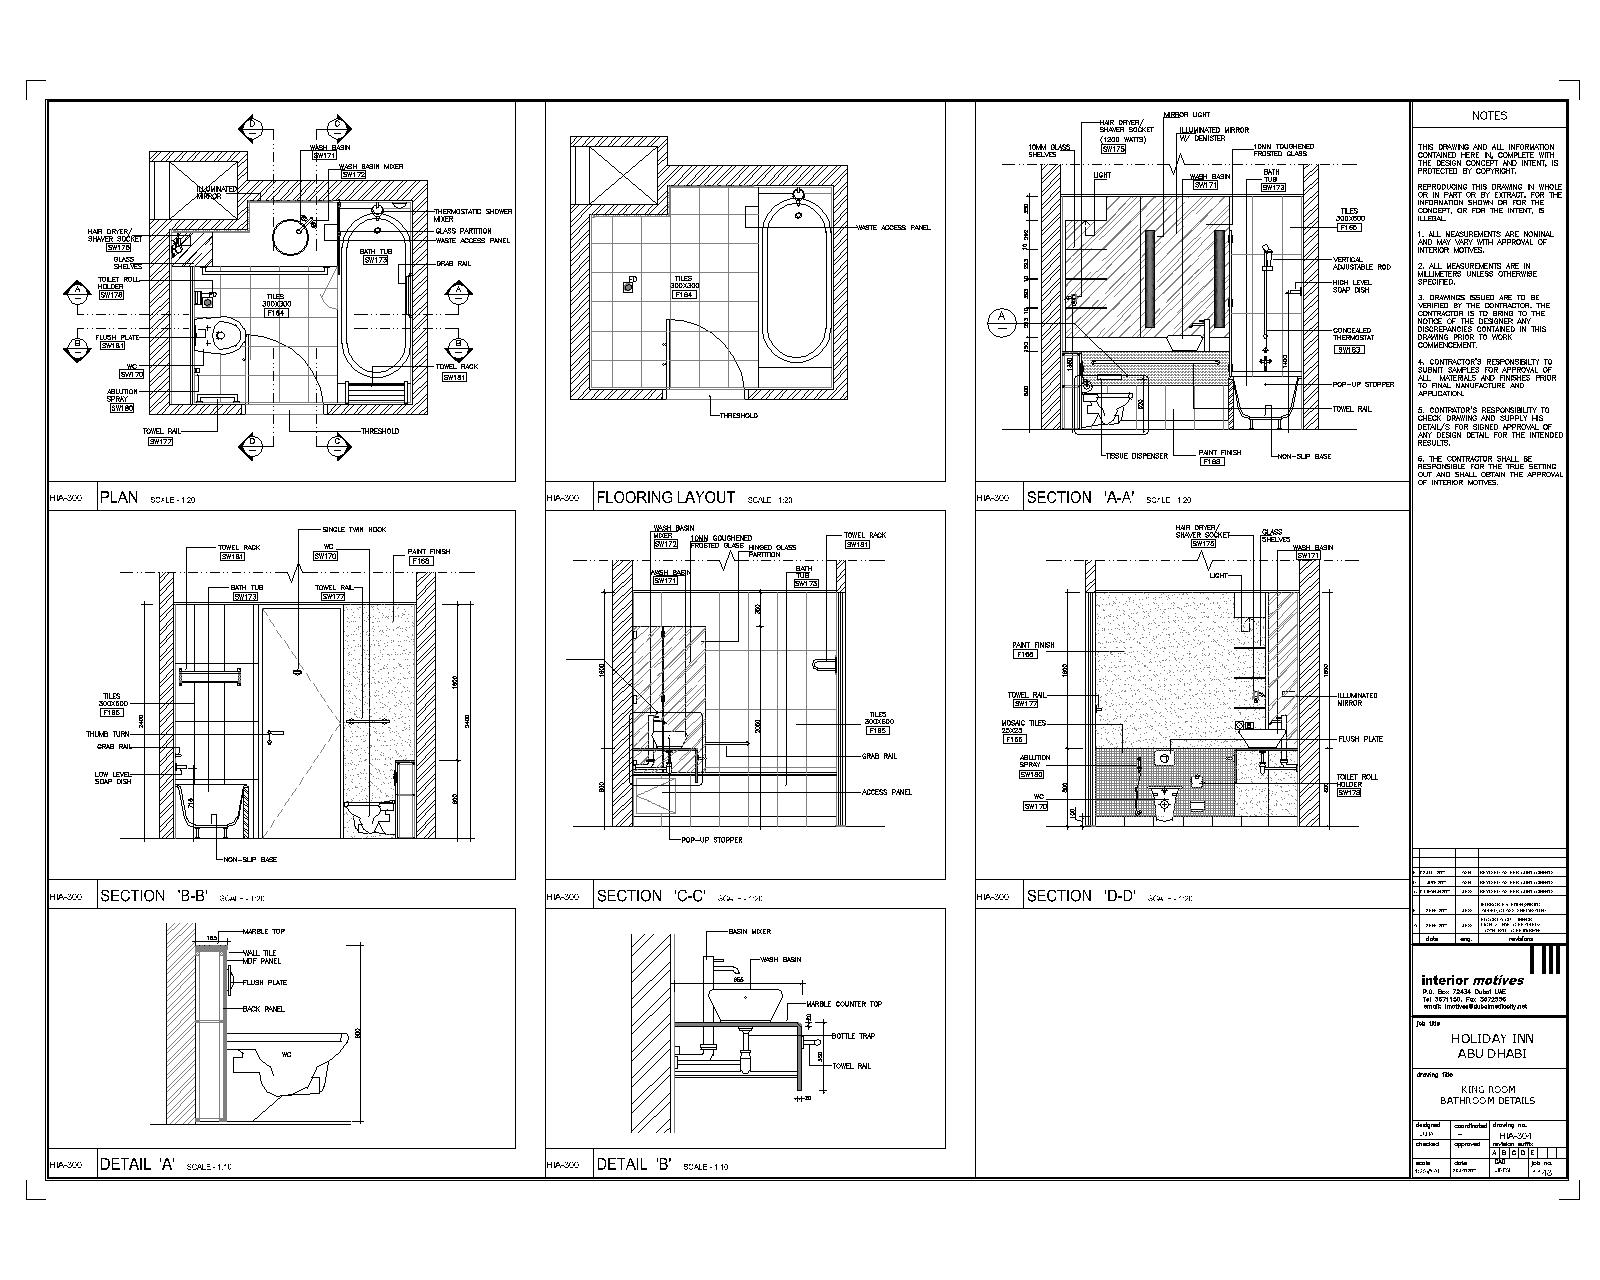 Autocad Drawings Detail By Ashik Ahammed At